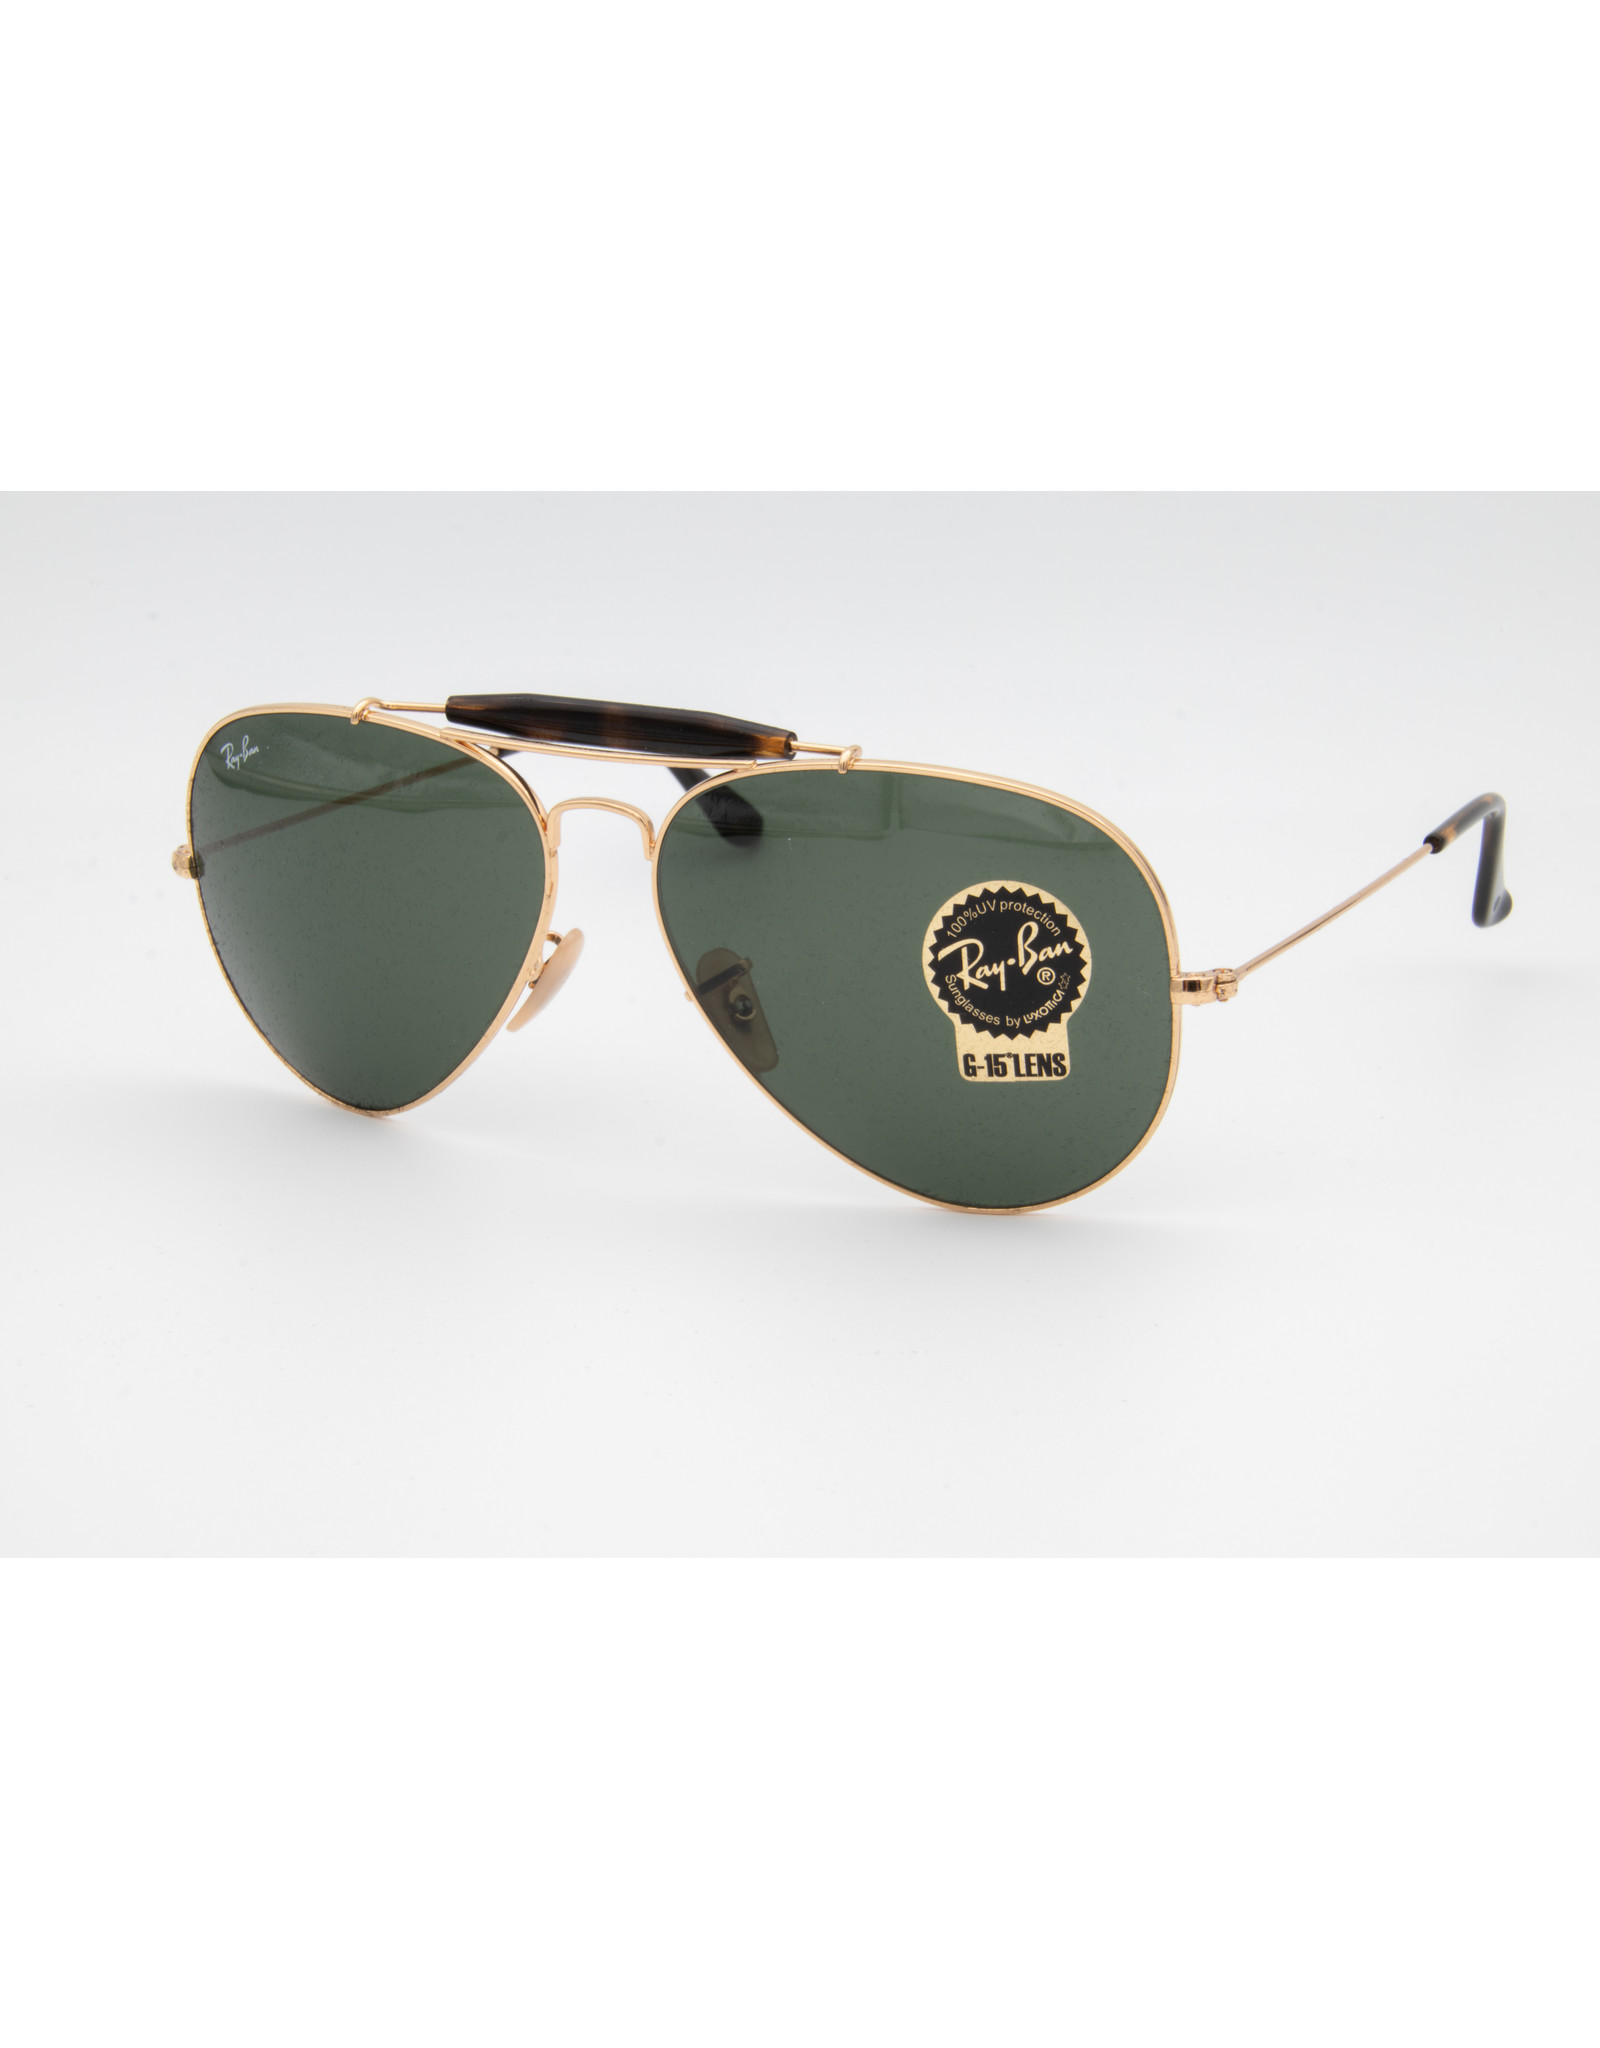 Ray-Ban Rb 3029 Outdoorsman 181